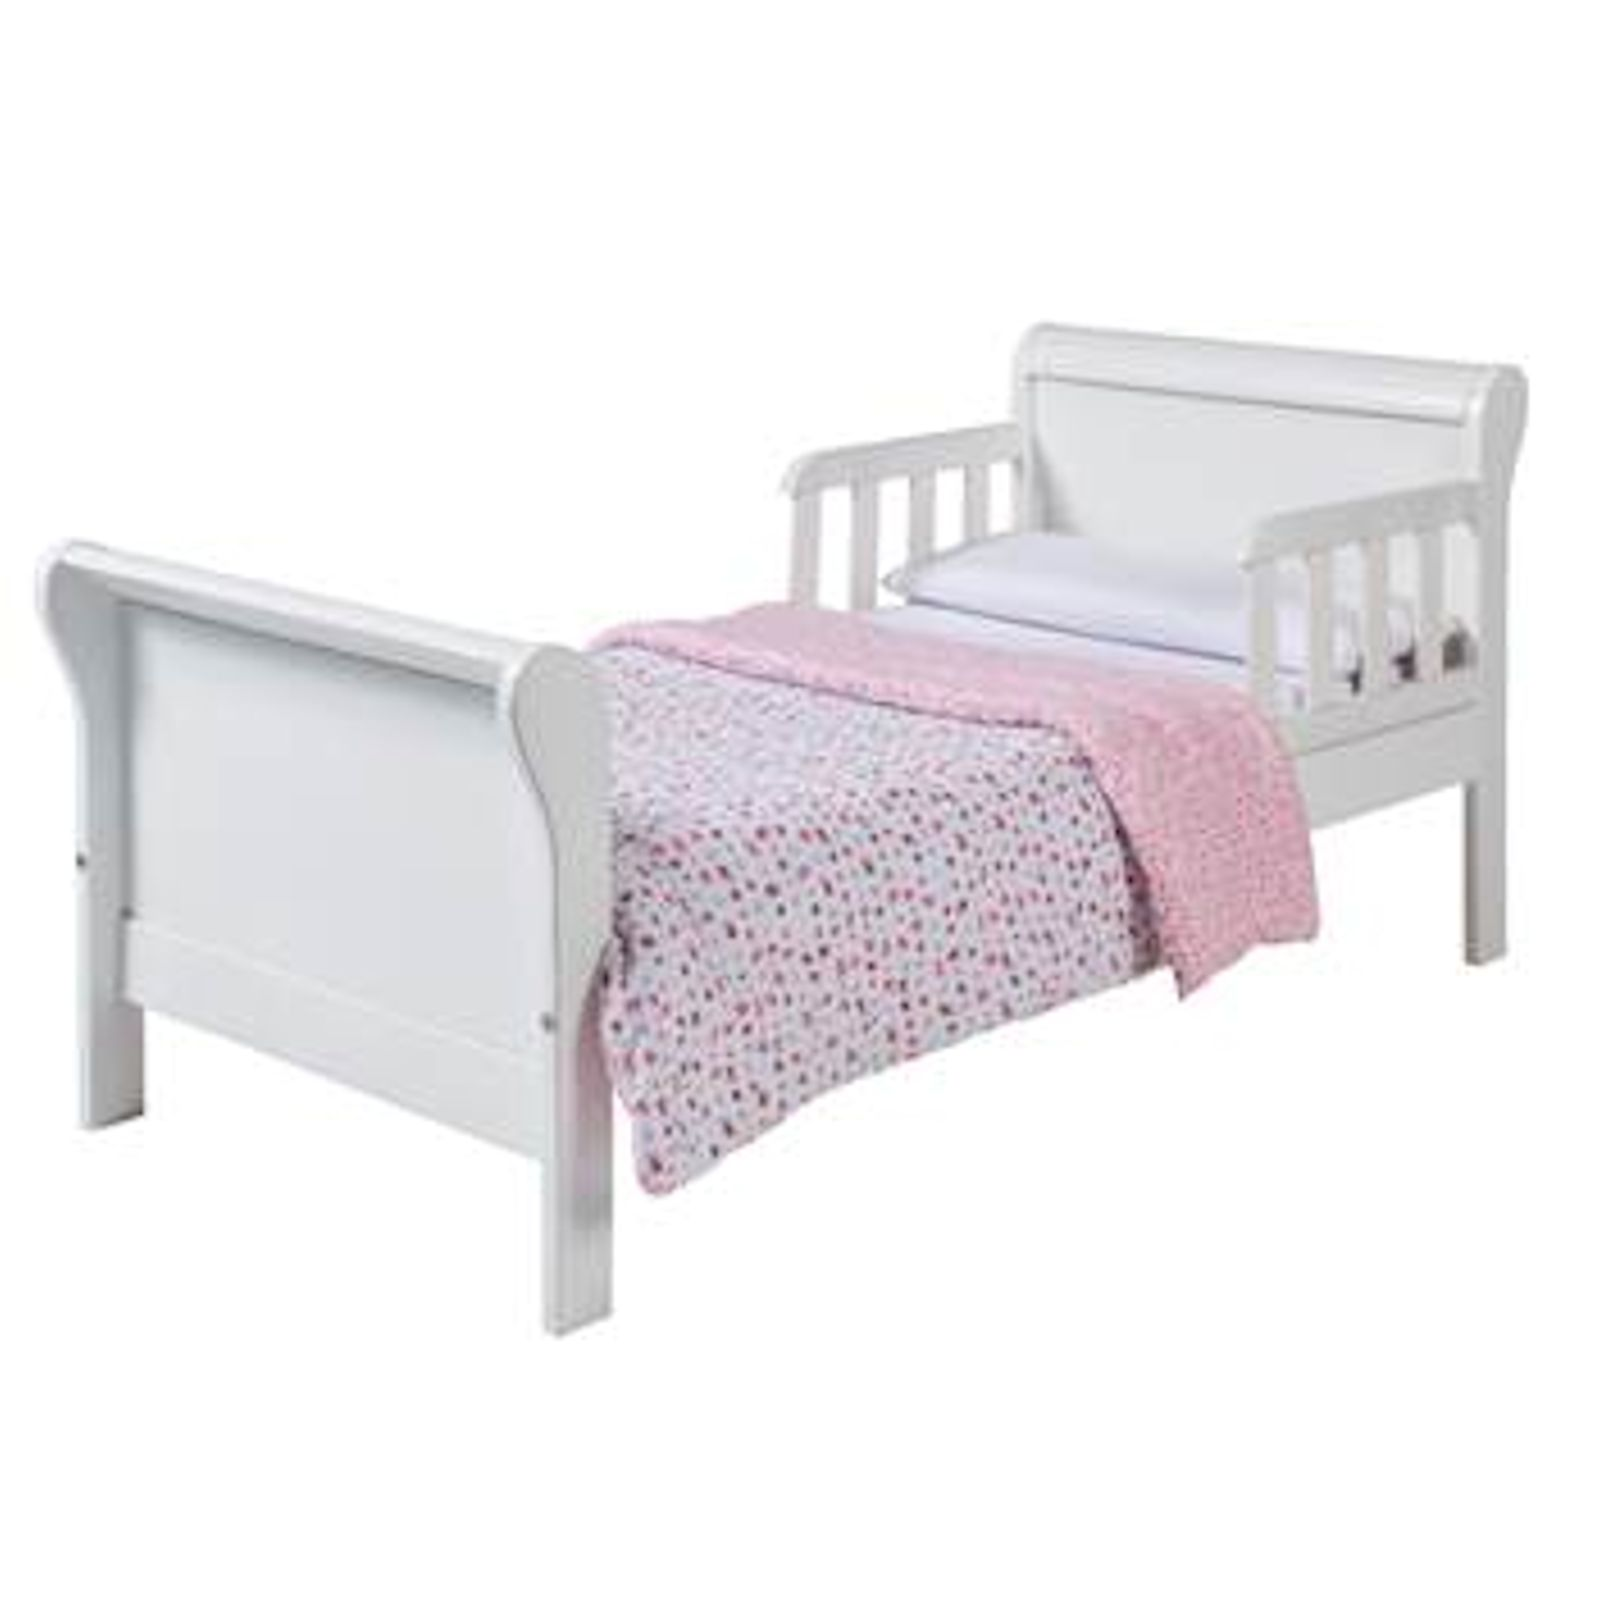 4Baby Deluxe Sleigh Junior Toddler Bed With Foam Mattress - White ...